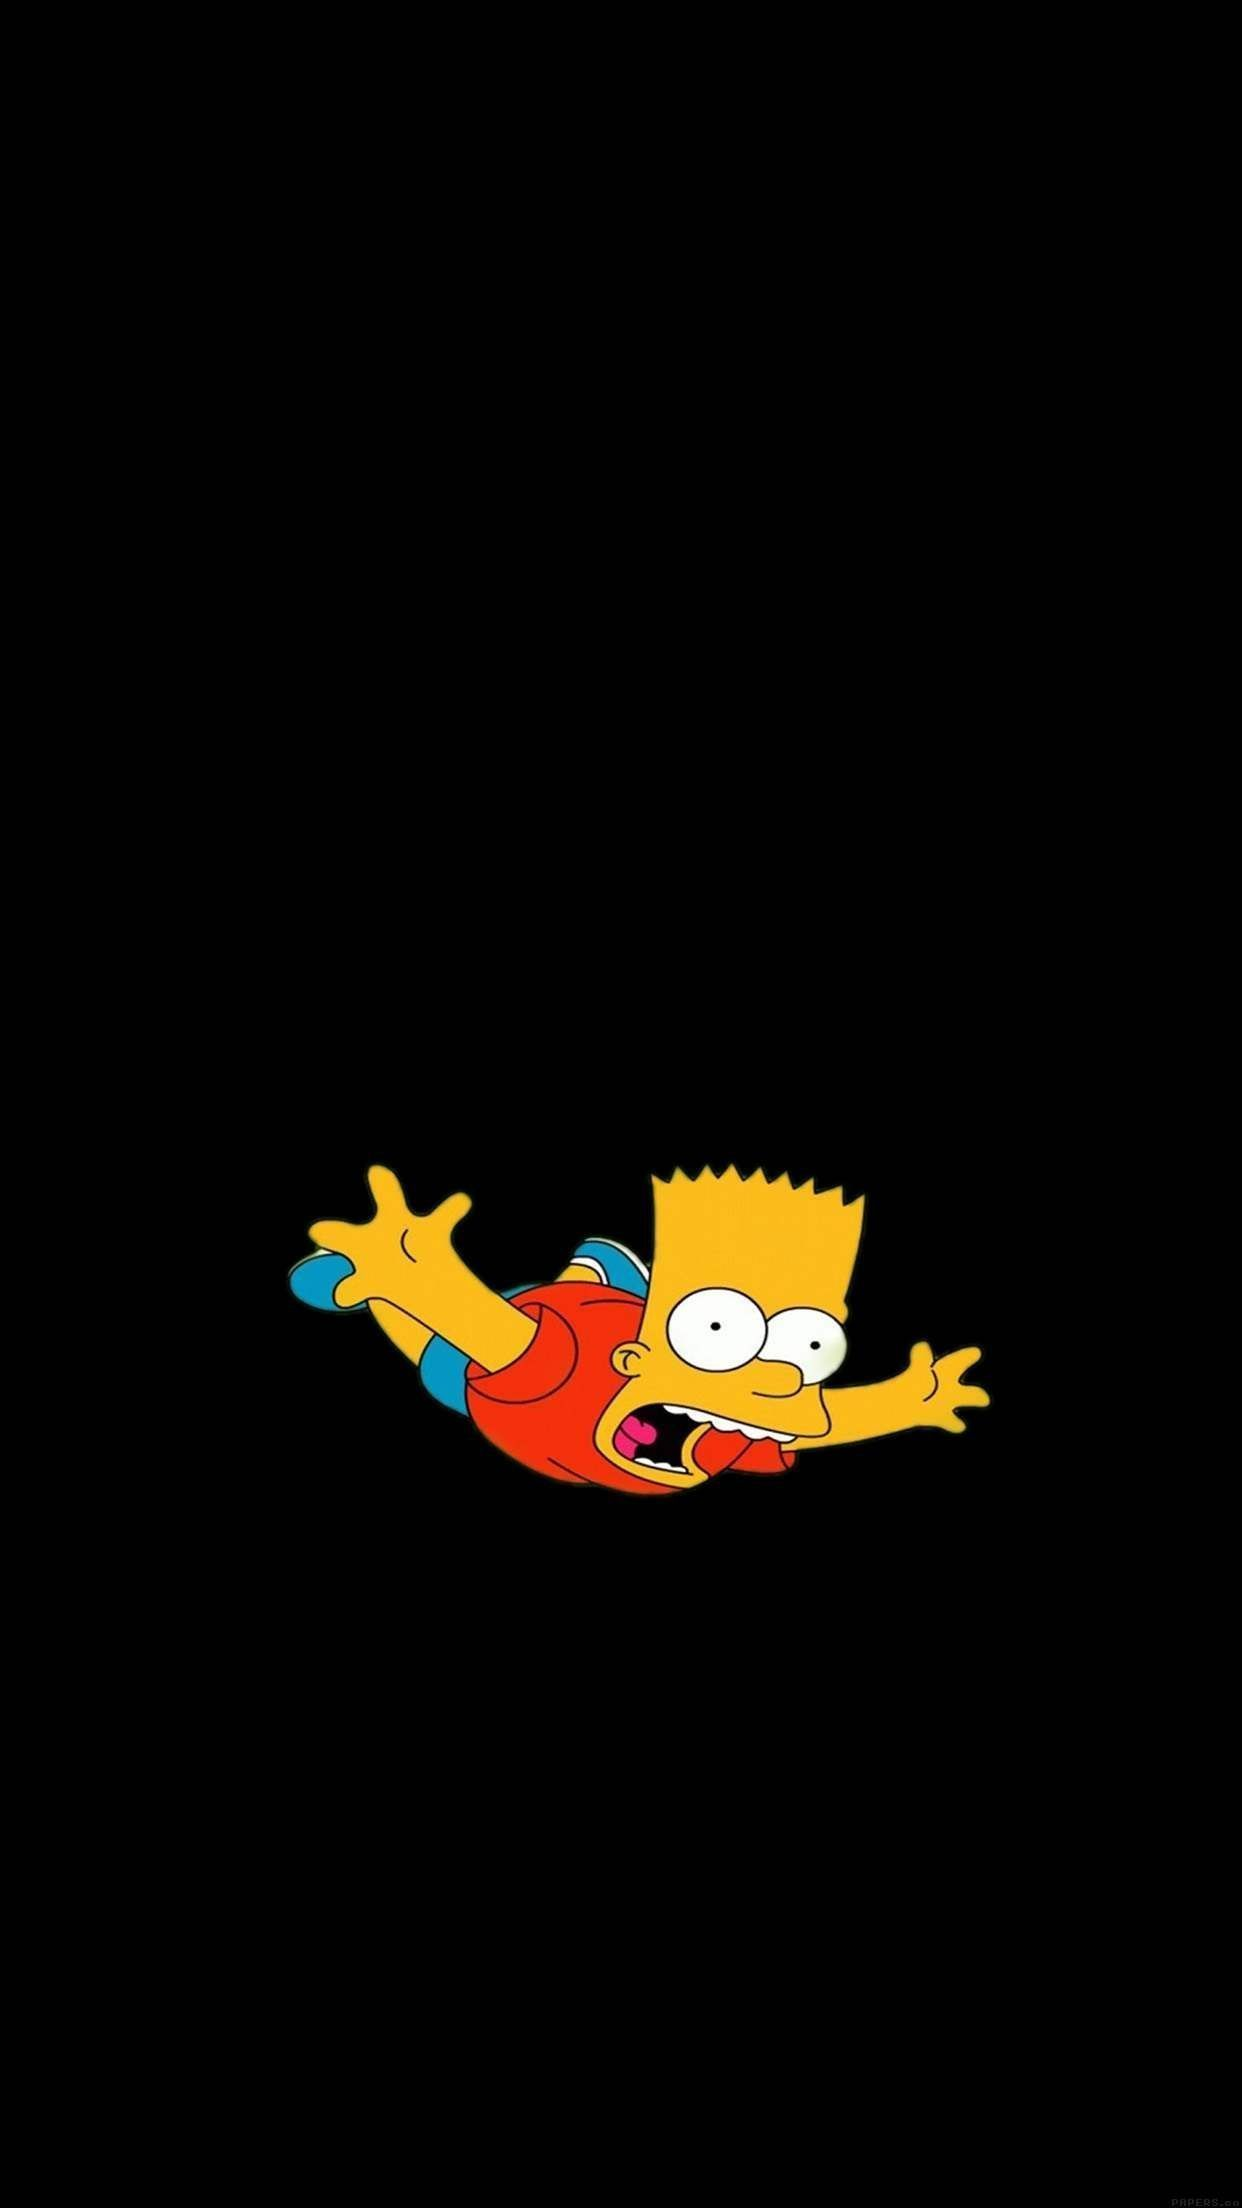 Bart Simpson Iphone Wallpapers Top Free Bart Simpson Within The Simpsons Wallpaper Iphon In 2020 Simpson Wallpaper Iphone Best Iphone Wallpapers Funny Iphone Wallpaper